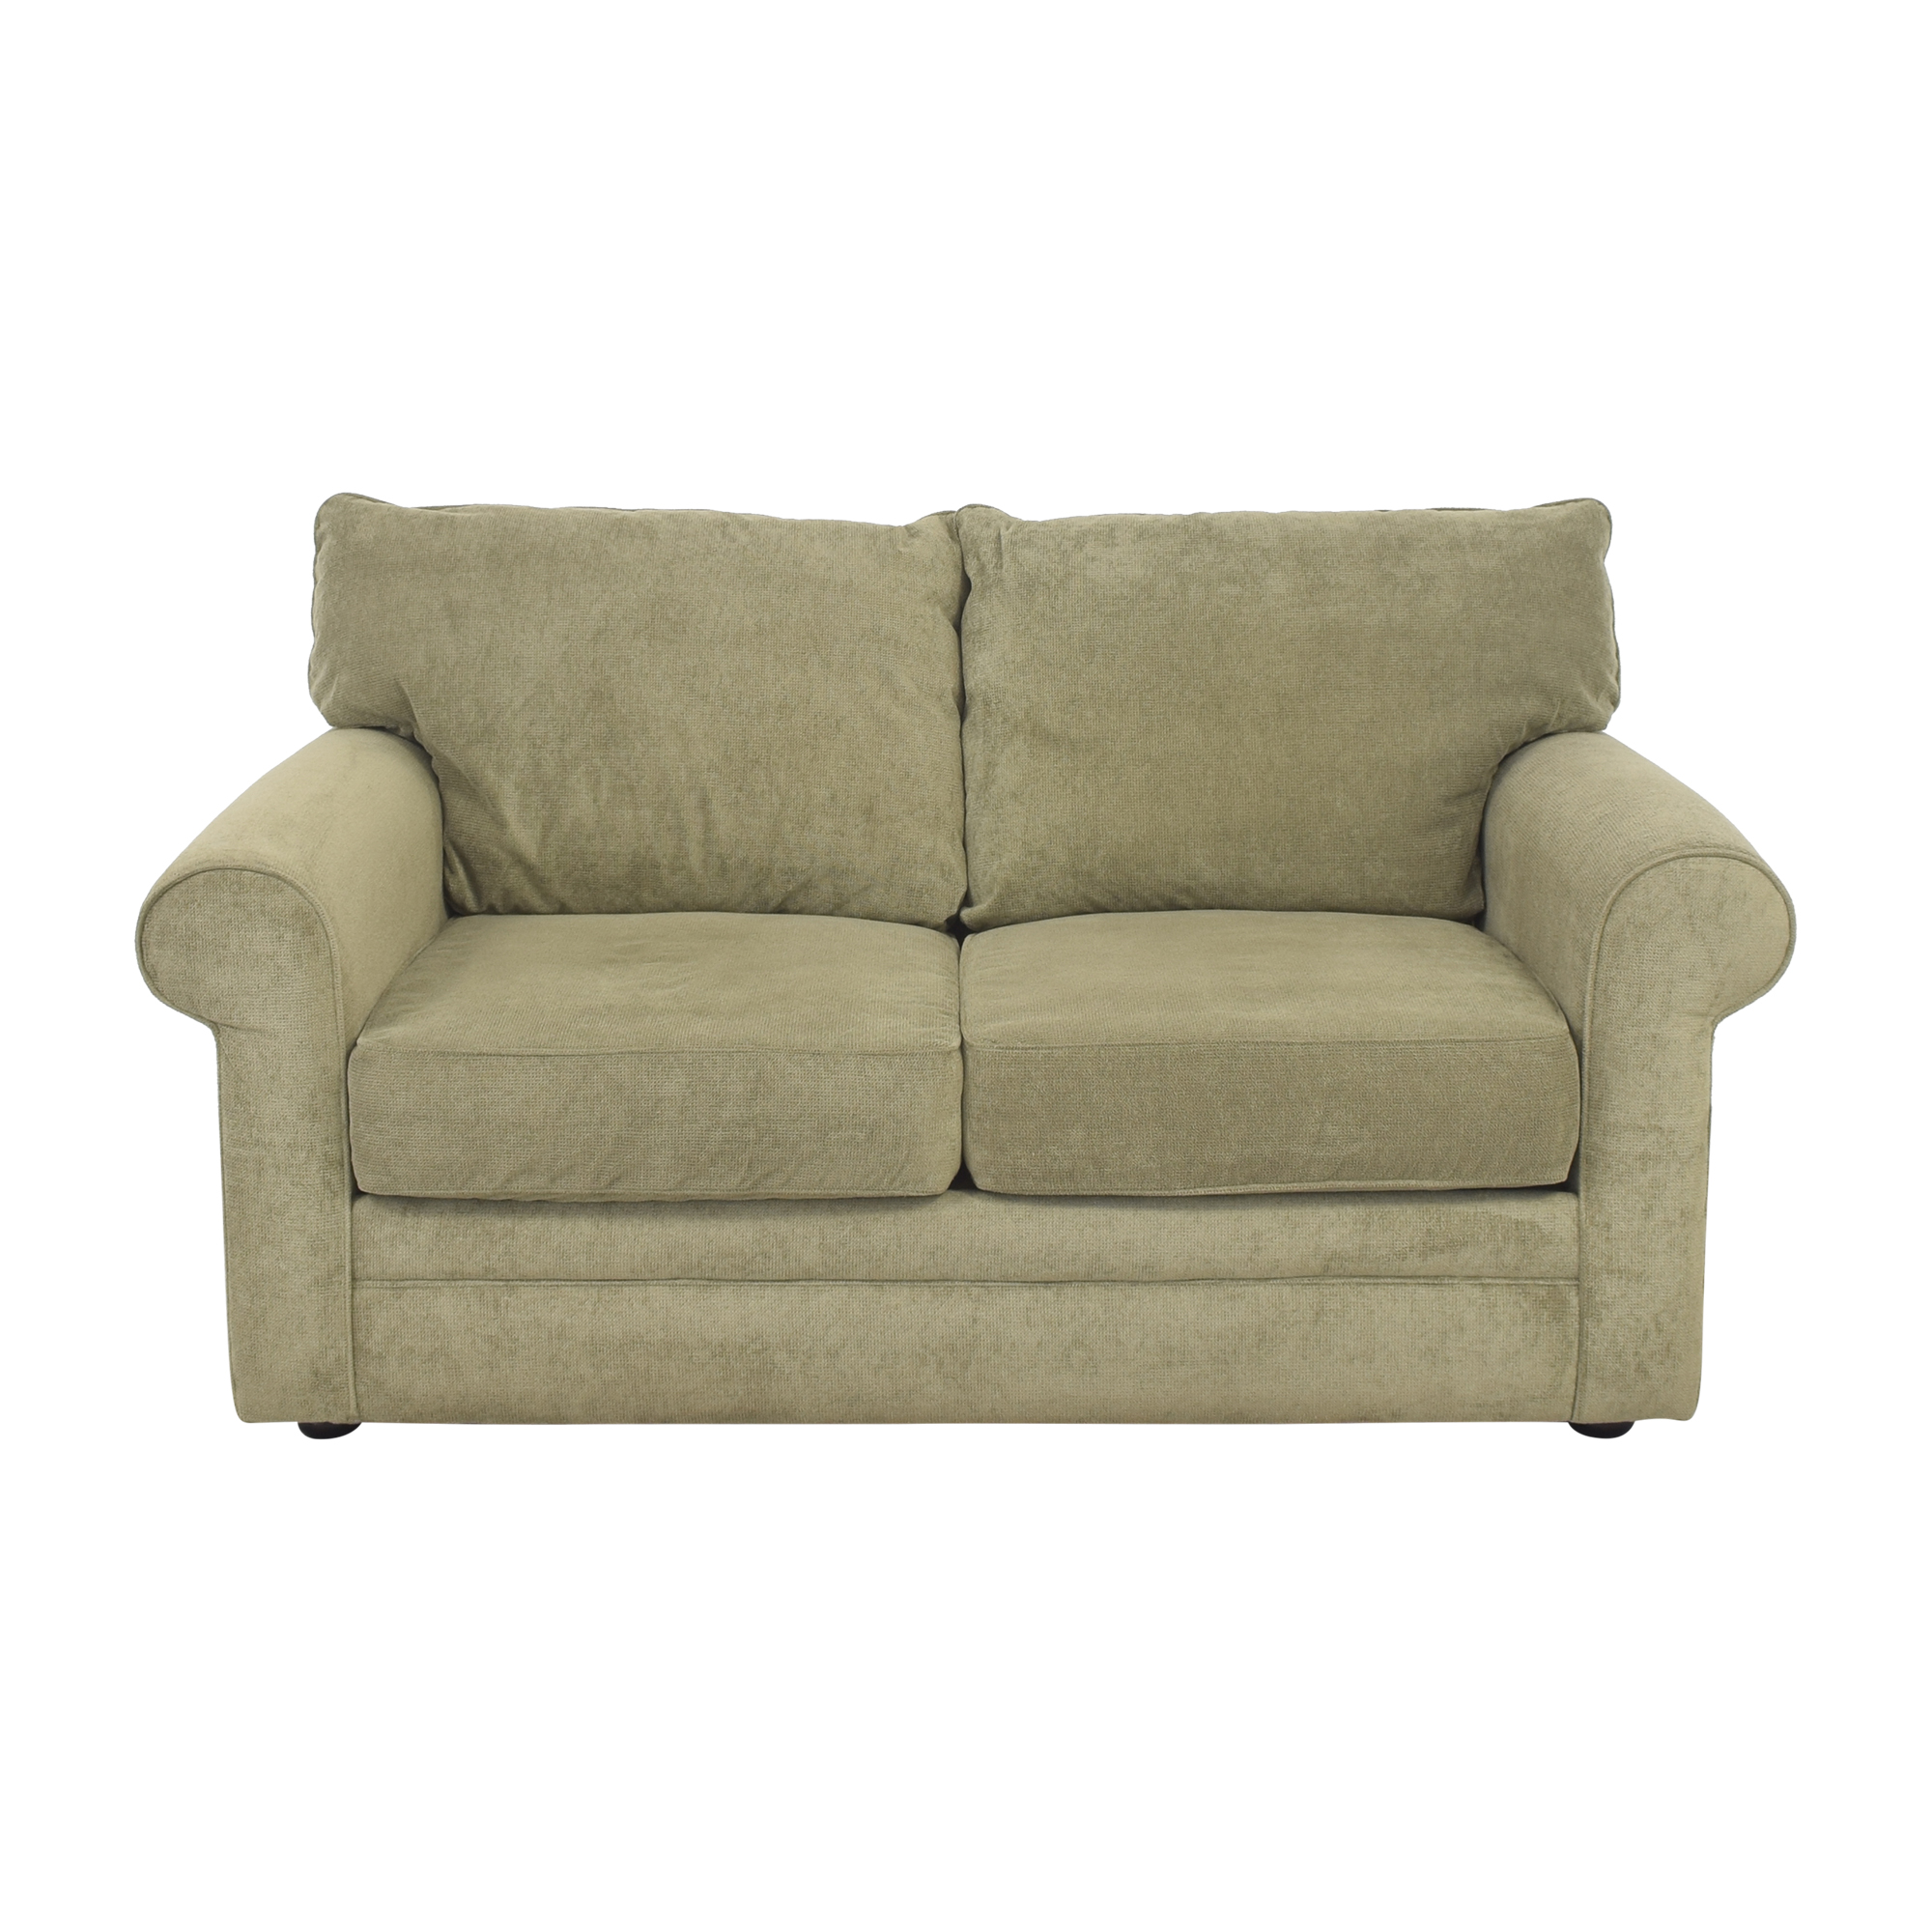 shop Klaussner Loveseat Klaussner Loveseats